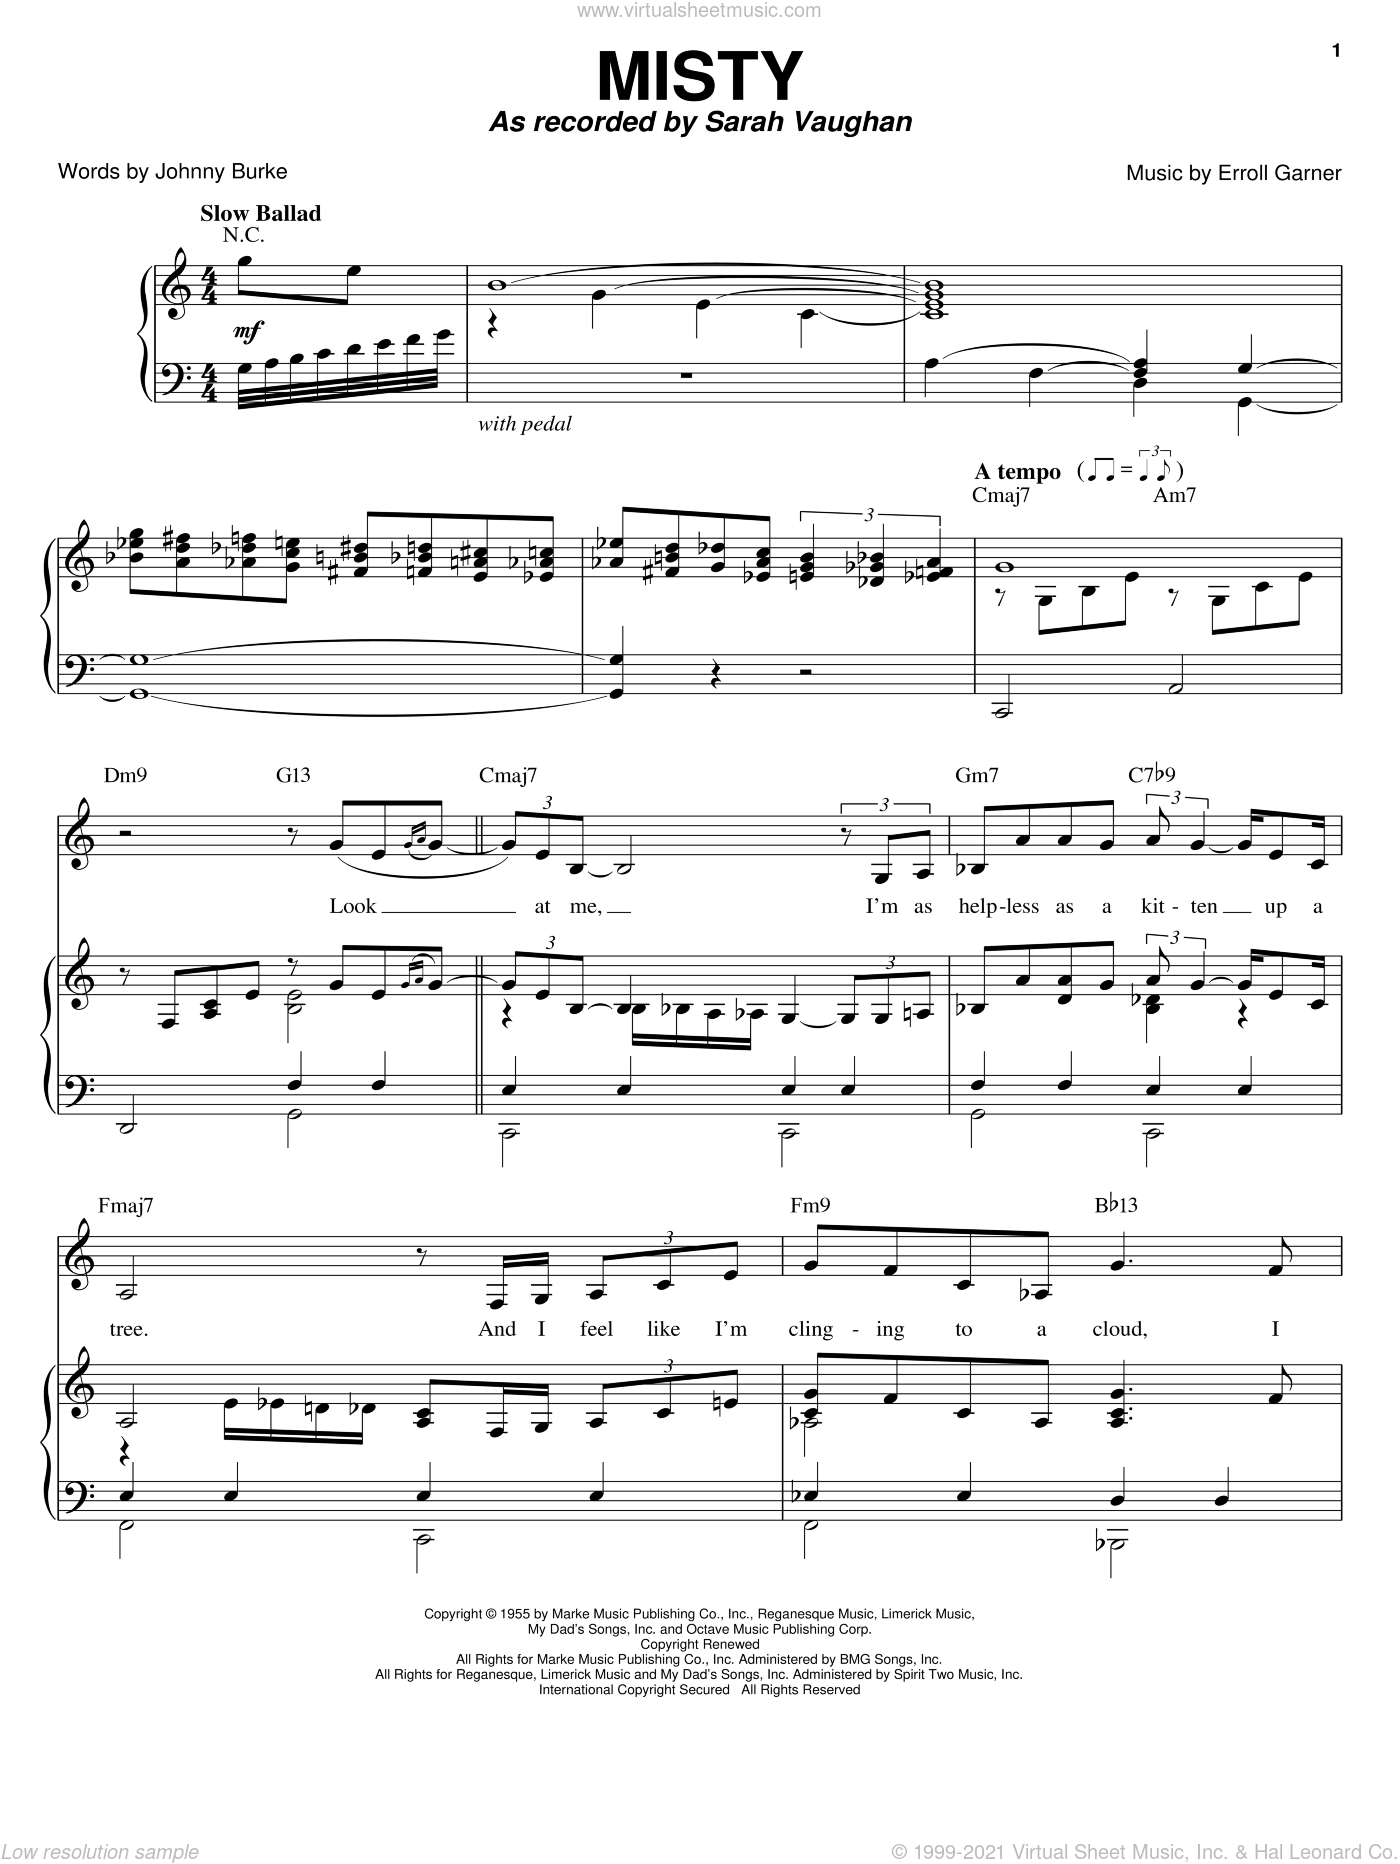 Misty sheet music for voice, piano or guitar by John Burke